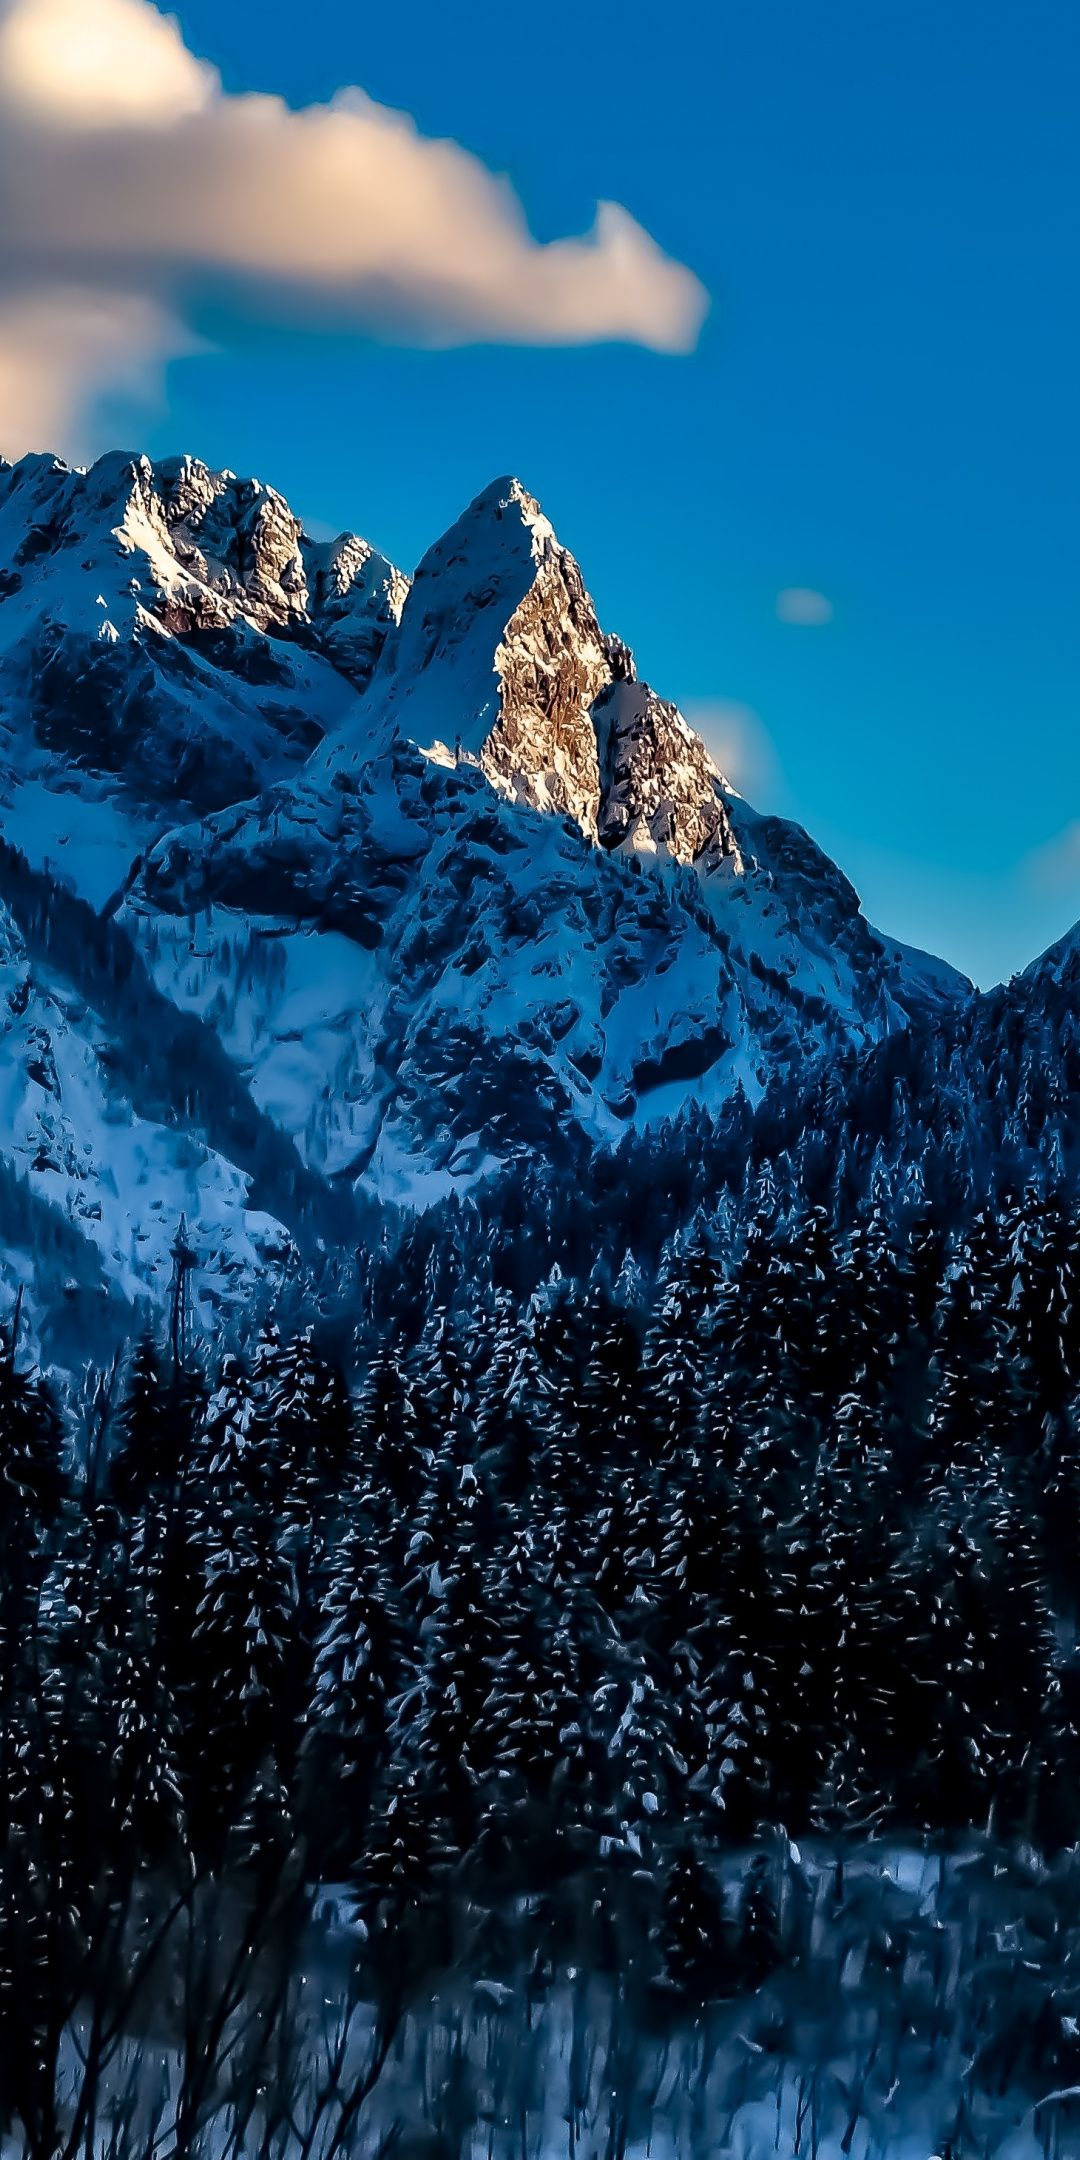 Snow Mountains Winter Italy 1080x2160 Wallpaper Iphone